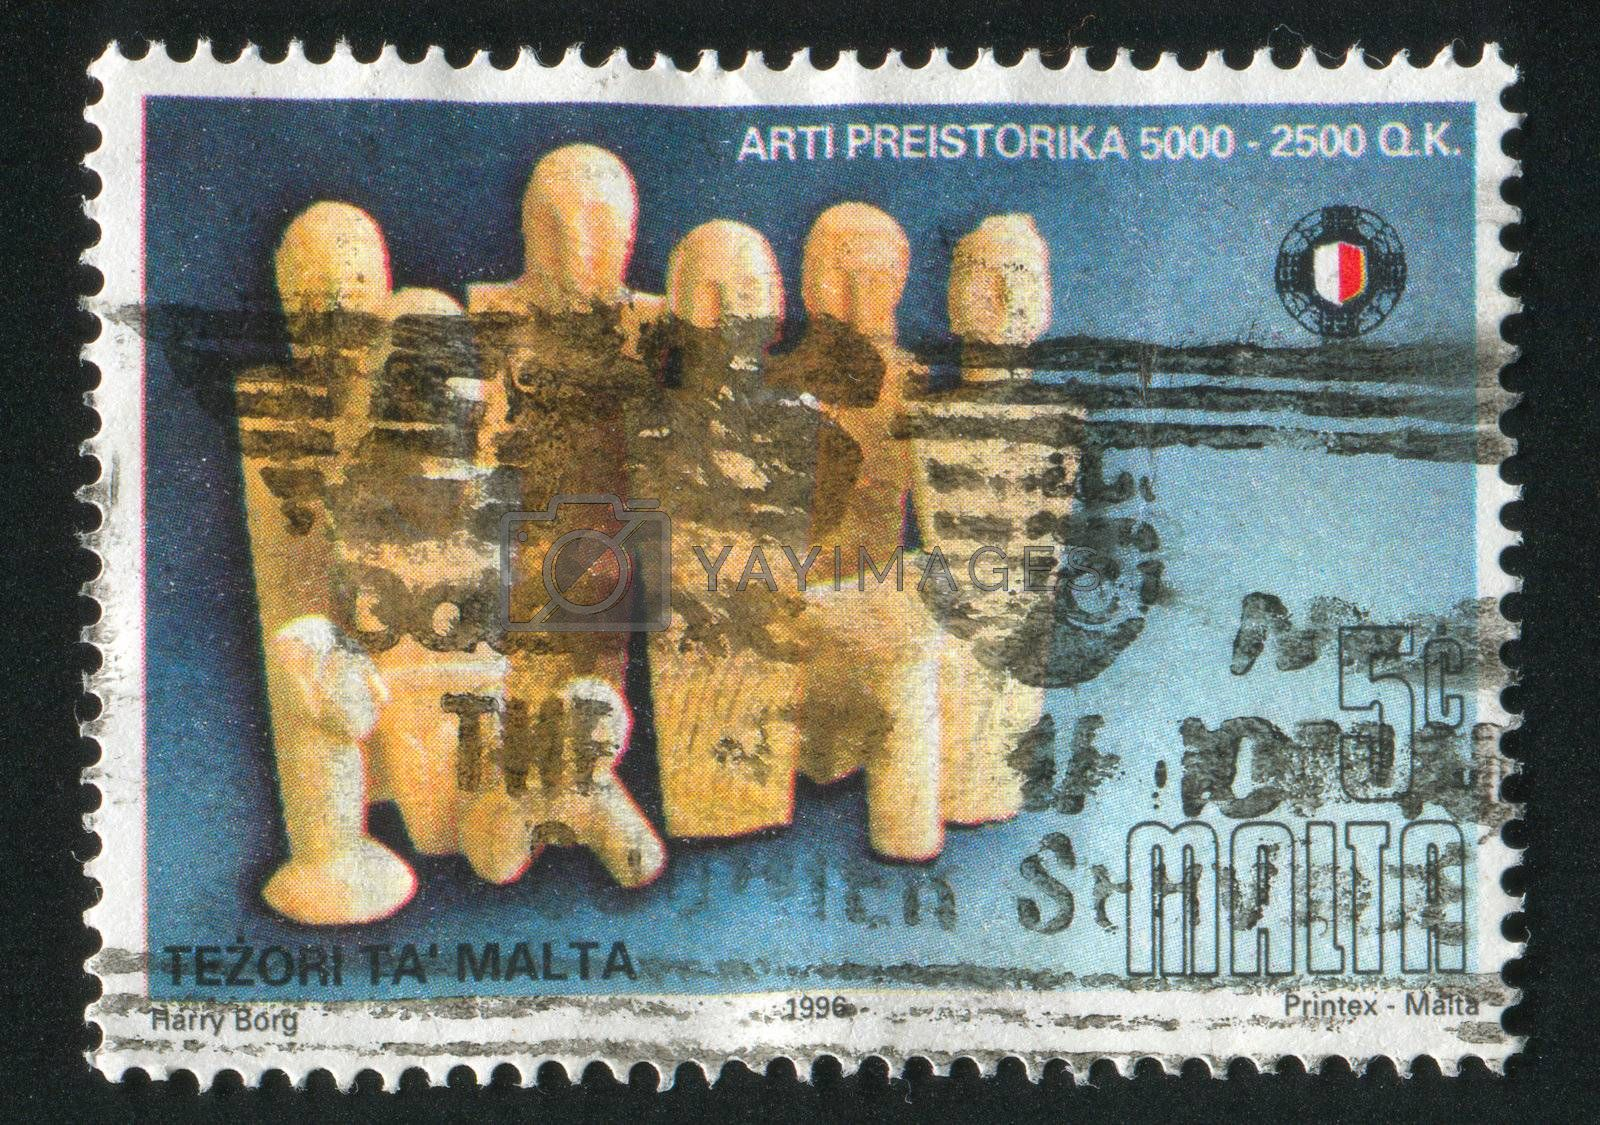 MALTA - CIRCA 1996: stamp printed by Malta, shows People, Animals, circa 1996